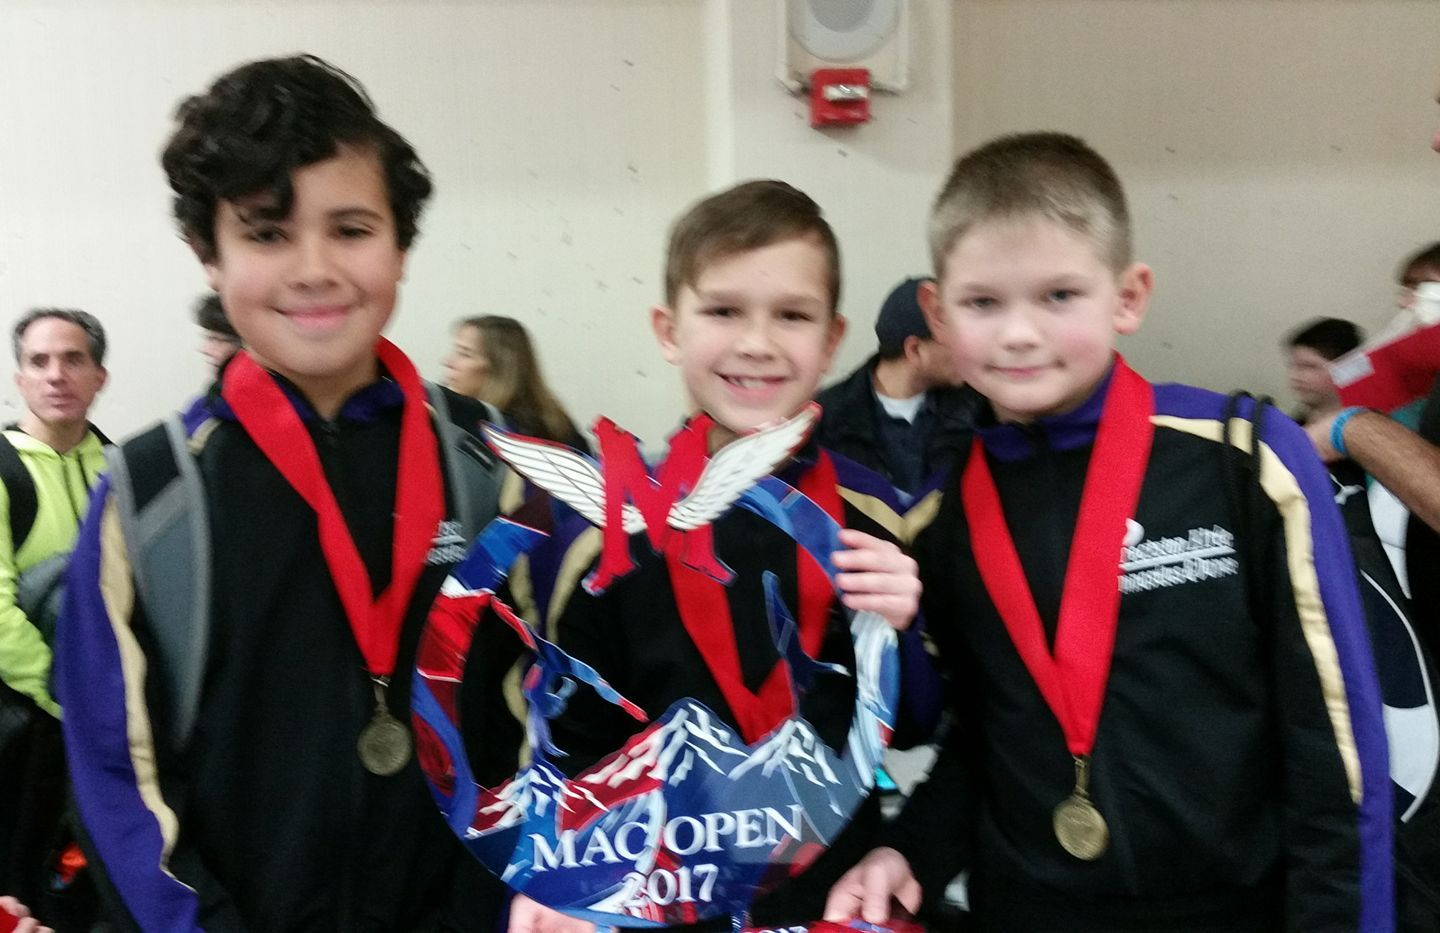 level 4 first place mac open.jpg